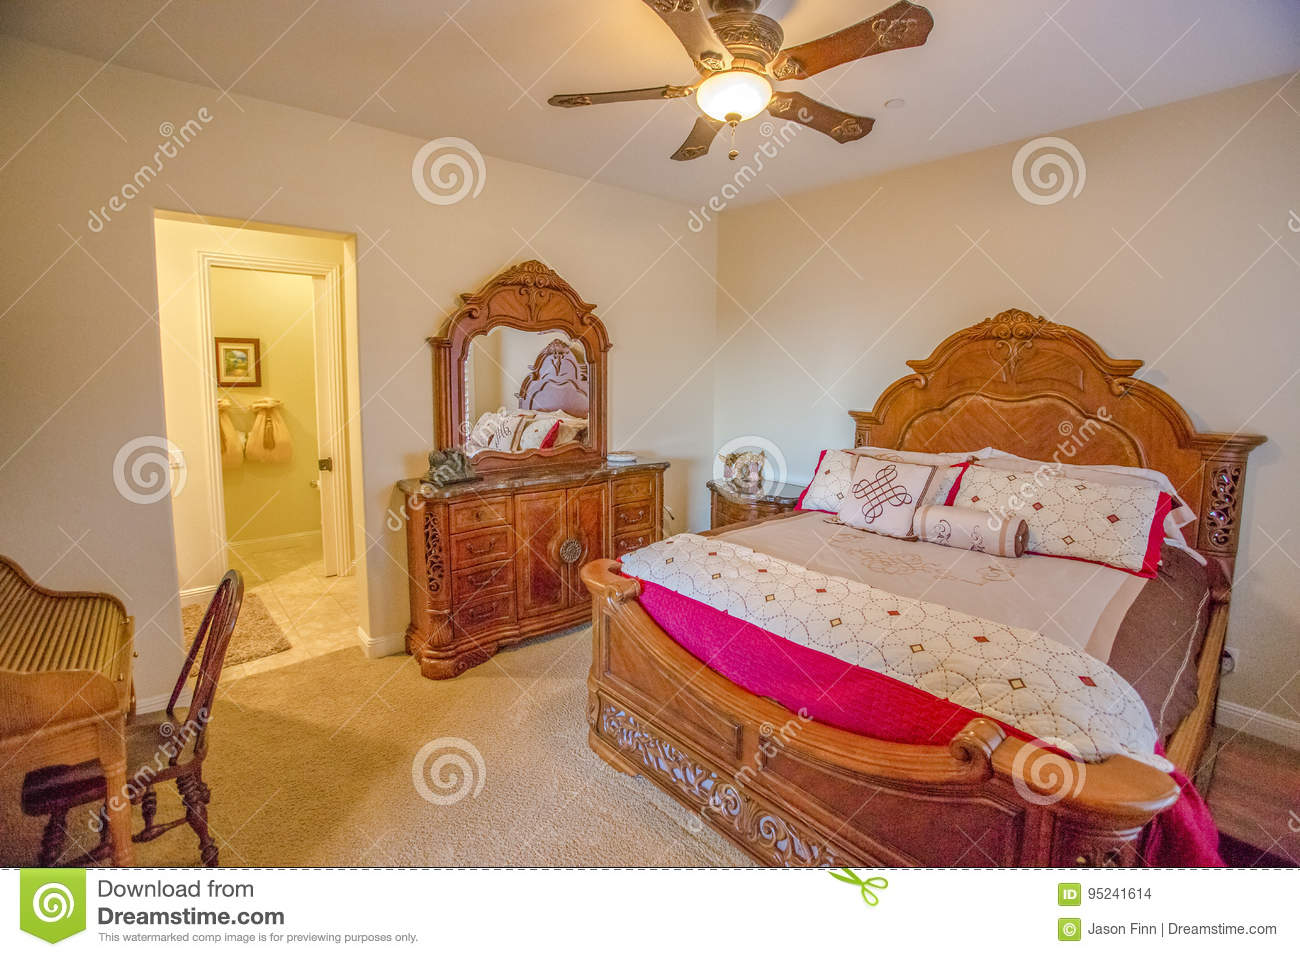 Wooden Antic Furniture Of San Diego Bedroom Stock Photo Image Of